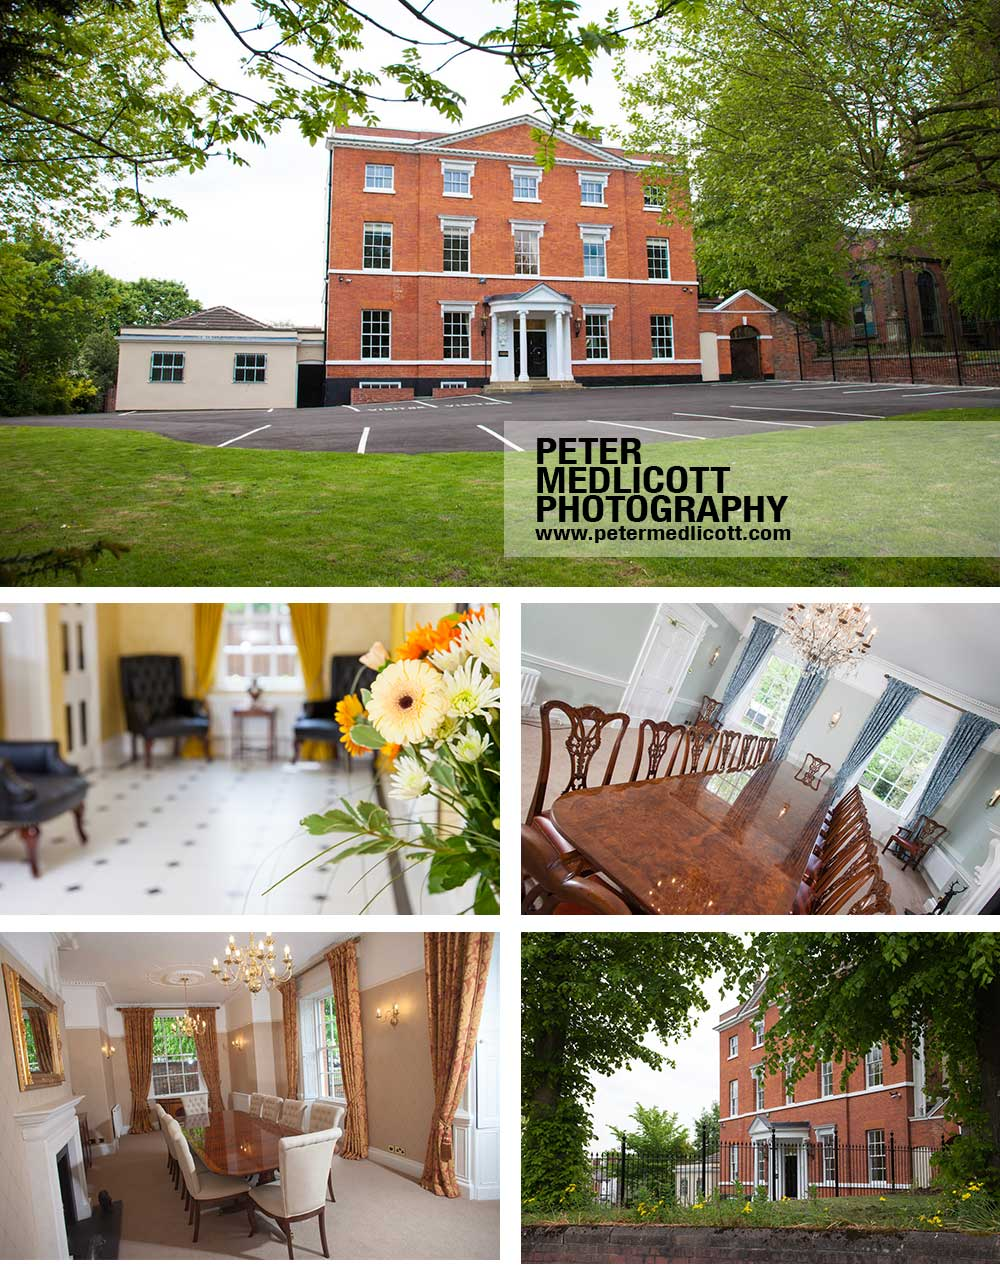 Commercial Property Photographer West Midlands King Charles House Dudley